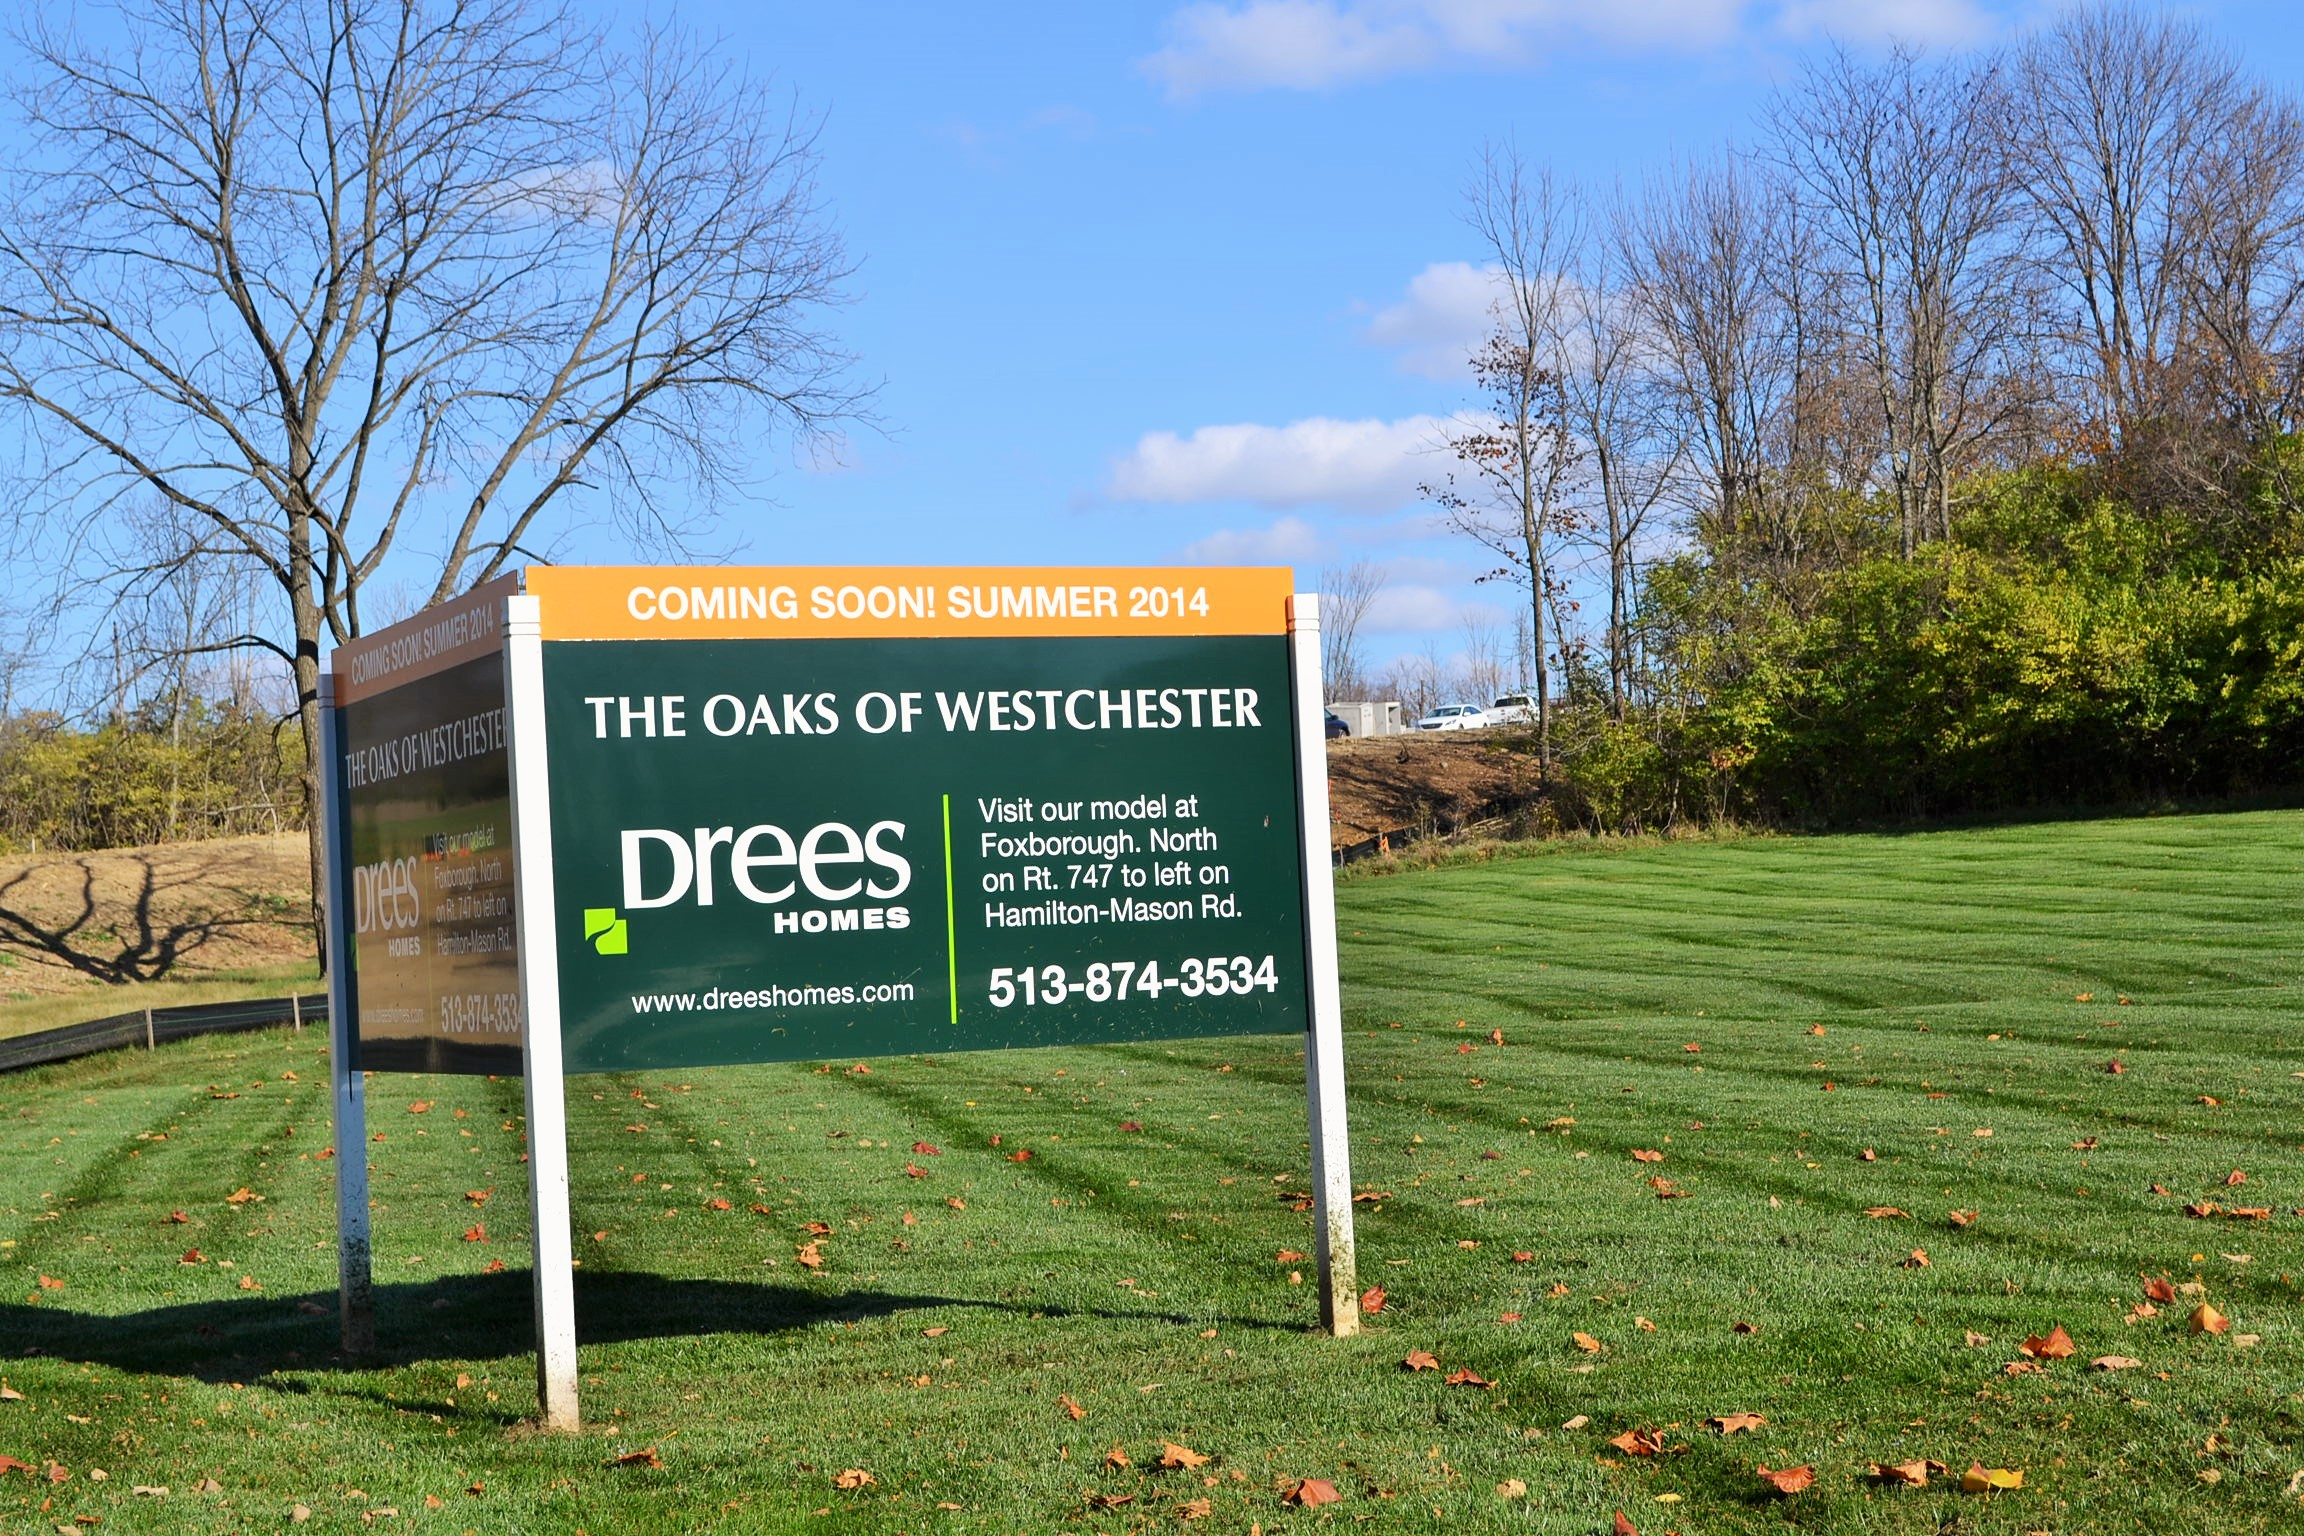 West Chester Real Estate - The Oaks of West Chester